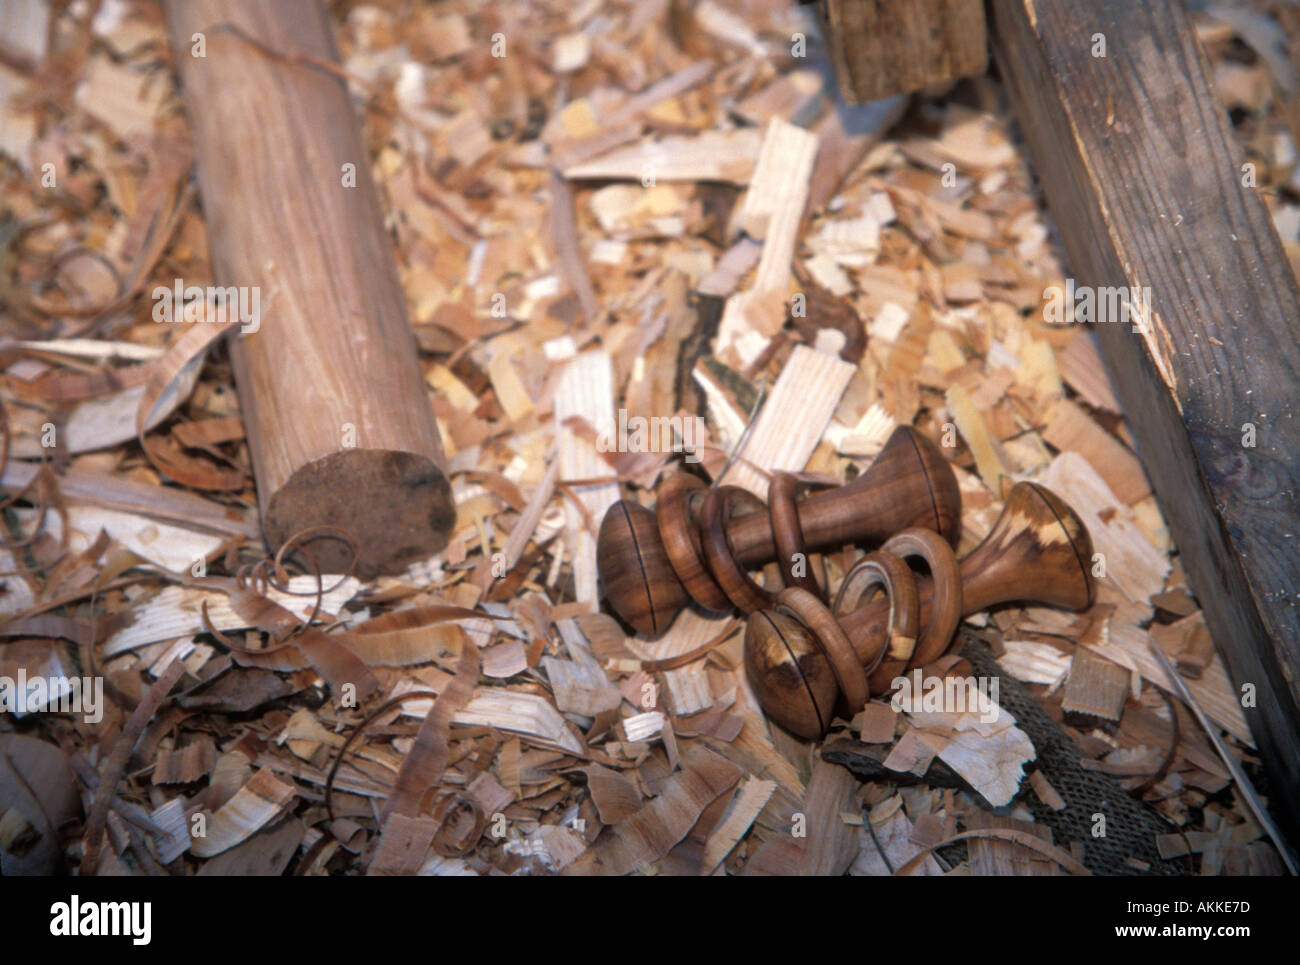 Mike Abbott a coppice craftsman a baby rattle his made on his pole lathe - Stock Image